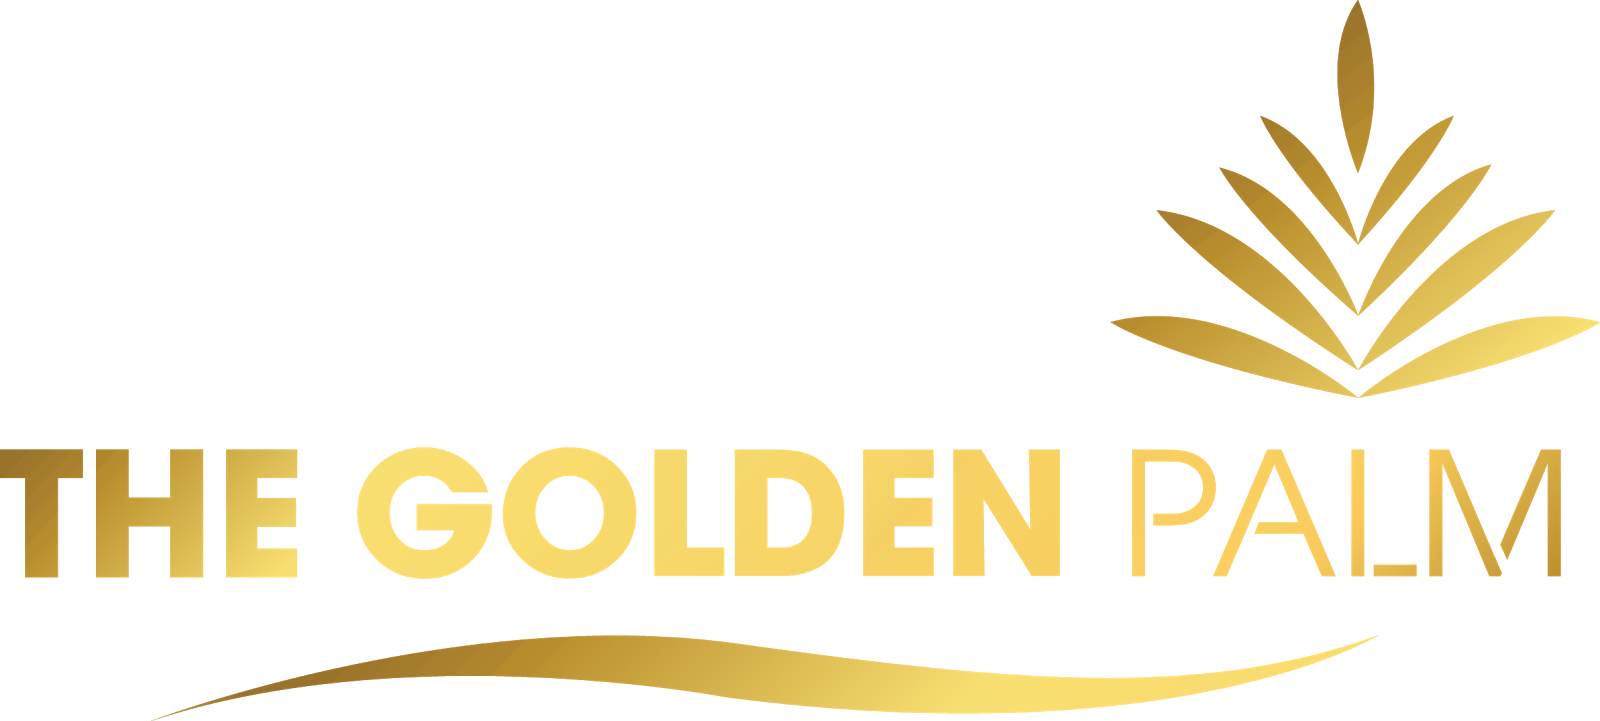 The Golden Palm